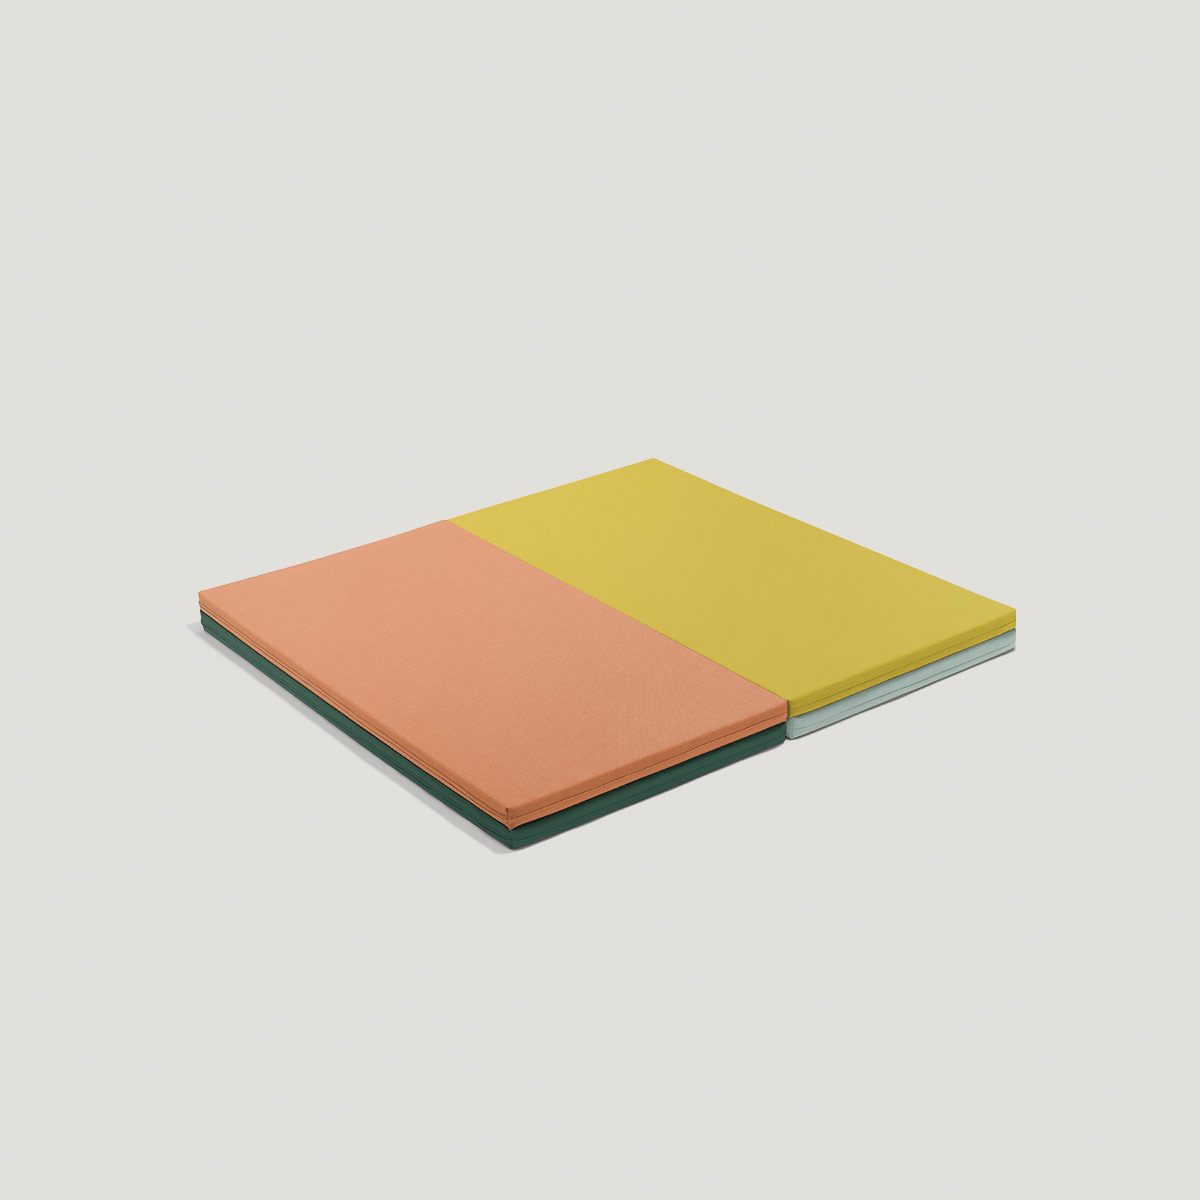 LEVEL_folding_play_mat_earthy_square_orange_yellow